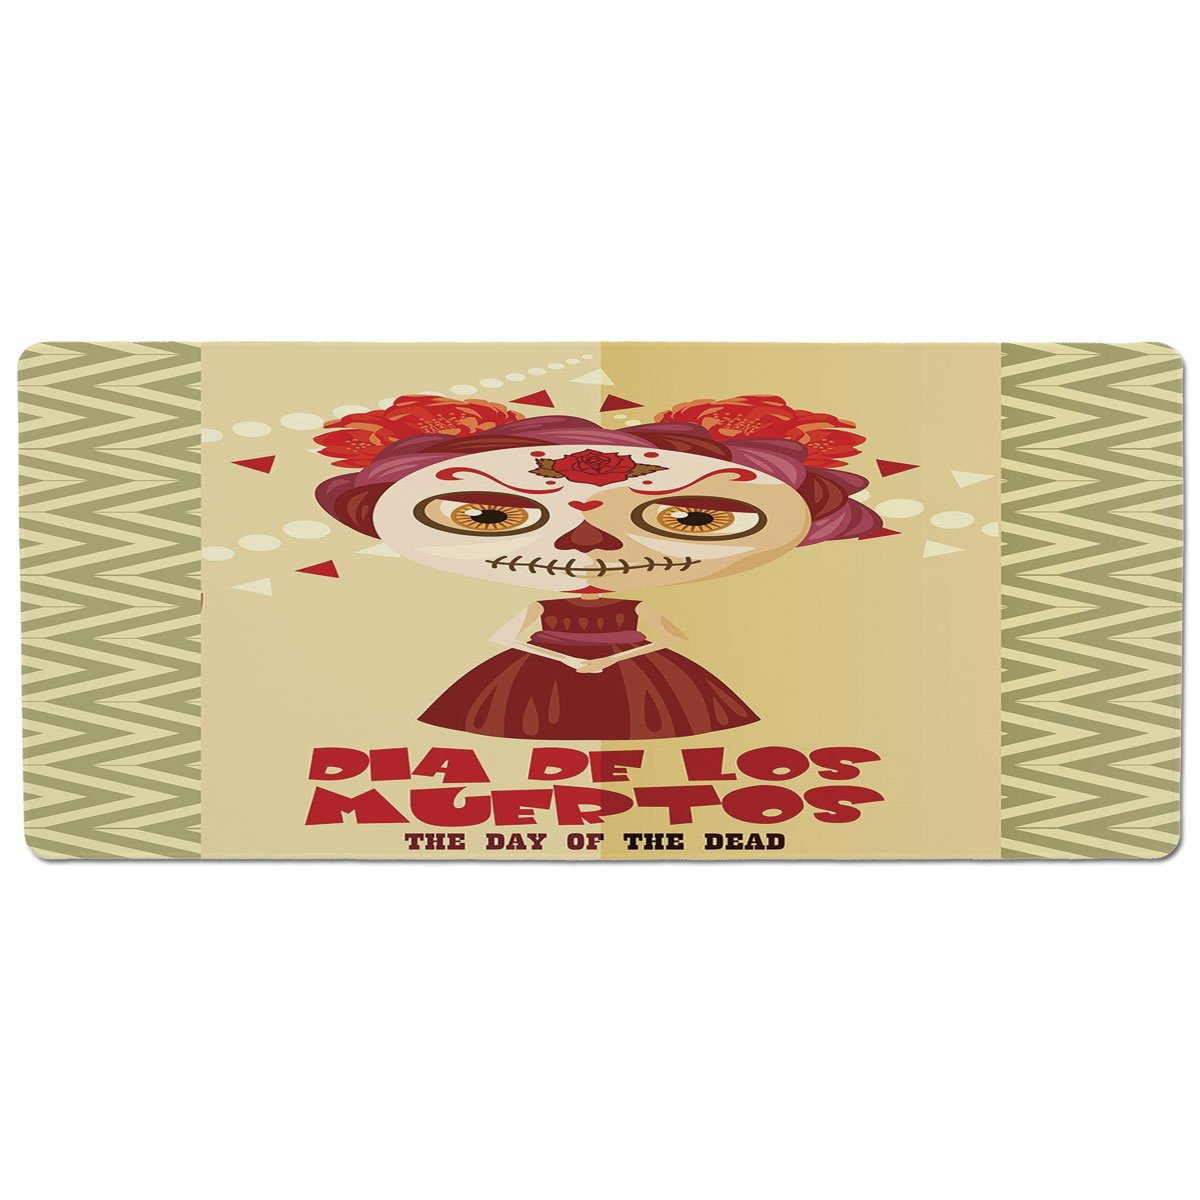 35.4\ Pet Mat for Food and Water,Day of The Dead Decor,Spanish Dia de Los Muertos Print Girl with Gothic Makeup,Cream Burgundy and Red,Rectangle Non-Slip Rubber Mat for Dogs and Cats